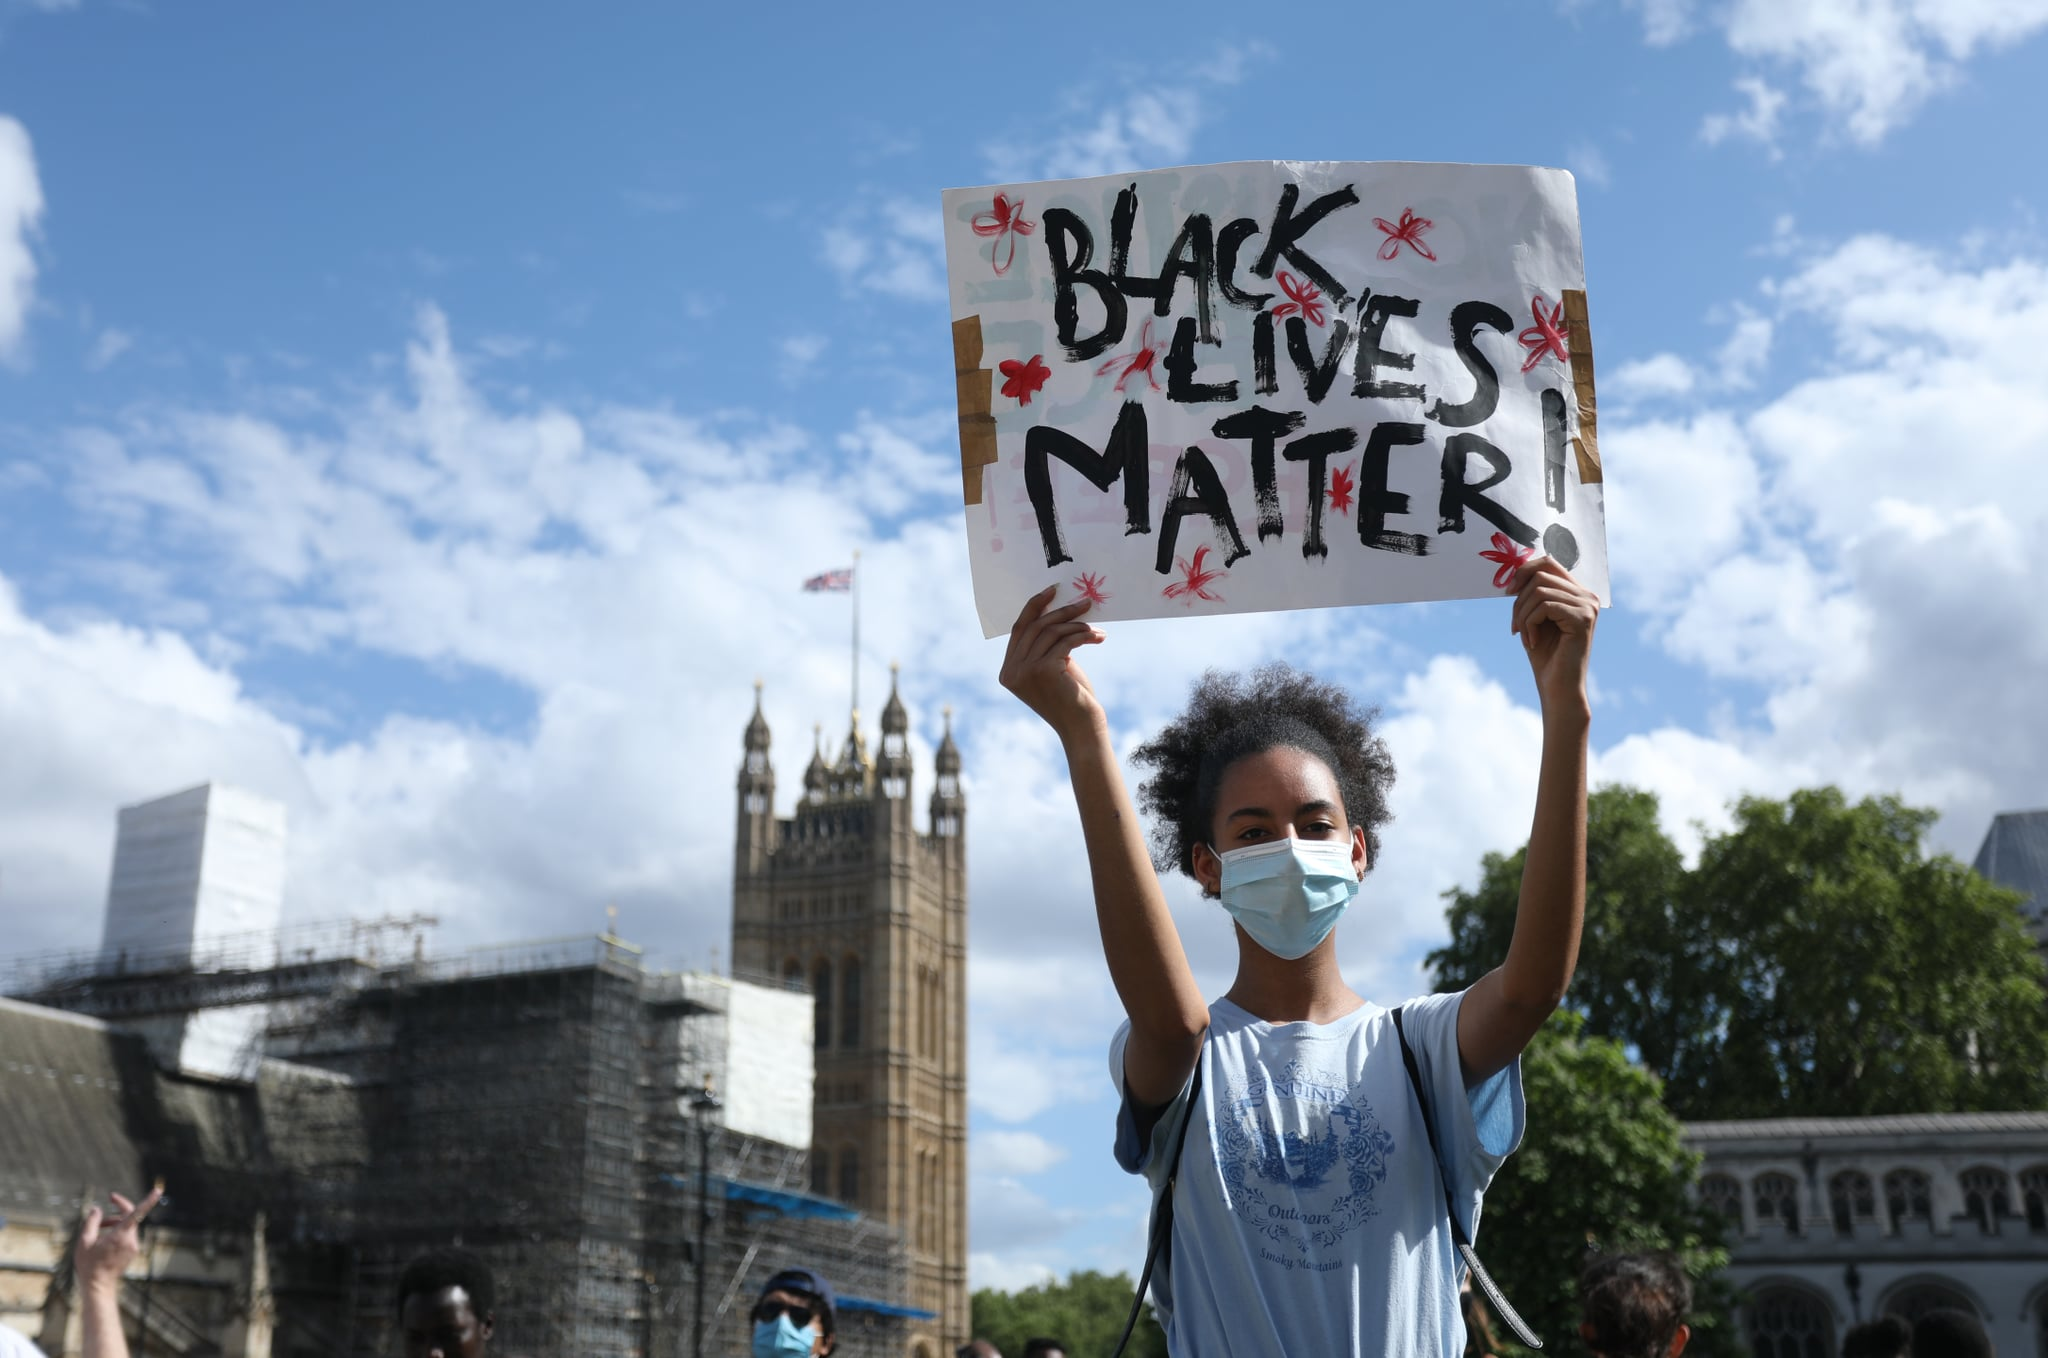 LONDON, UNITED KINGDOM - JUNE 21: A protester with a âBlack Lives Matter' placard stands opposite the Houses of Parliament following a march through central London, United Kingdom on June 21, 2020. (Photo by Isabel Infantes/Anadolu Agency via Getty Images)